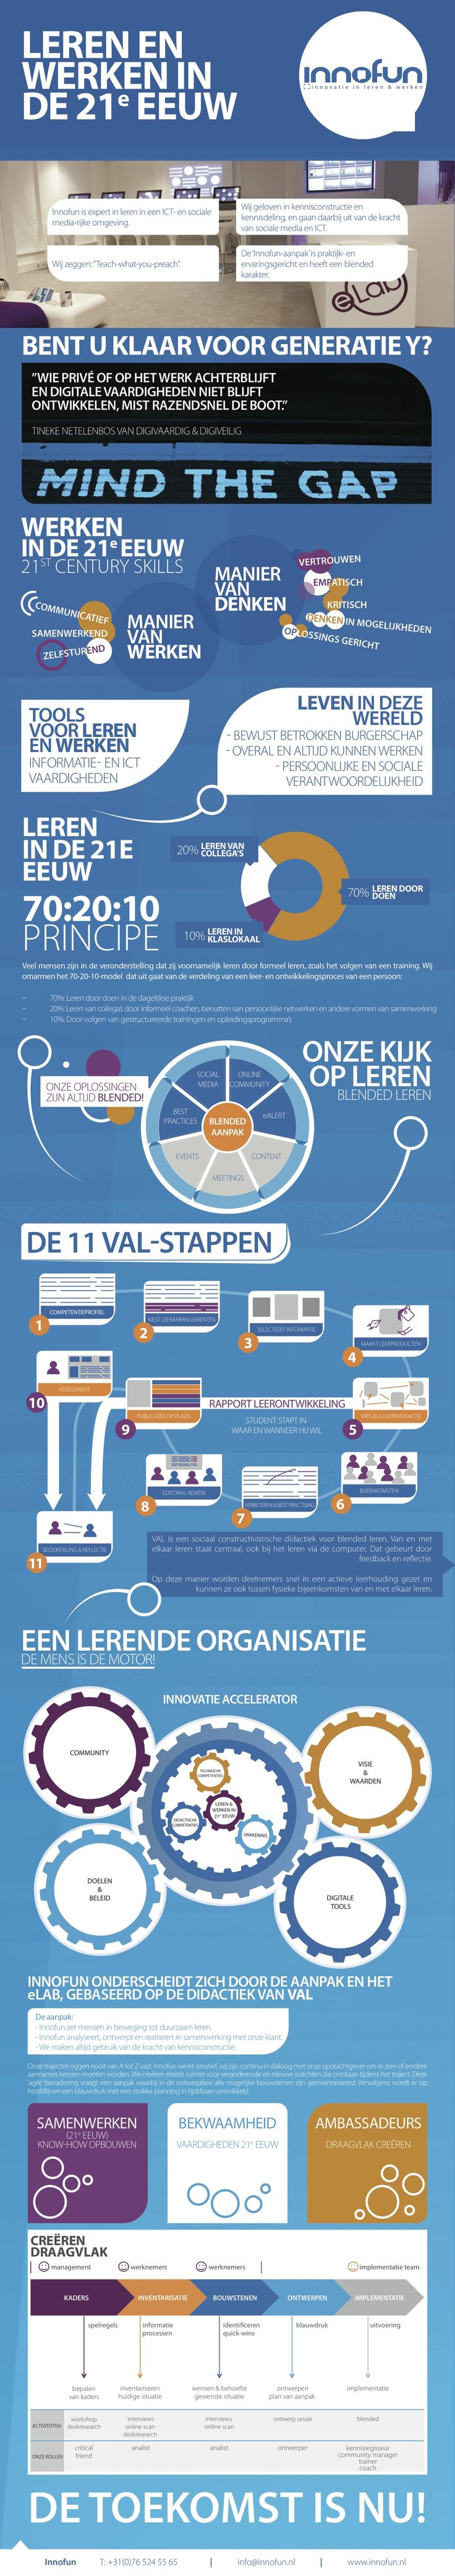 Alles over ons.... #infographic